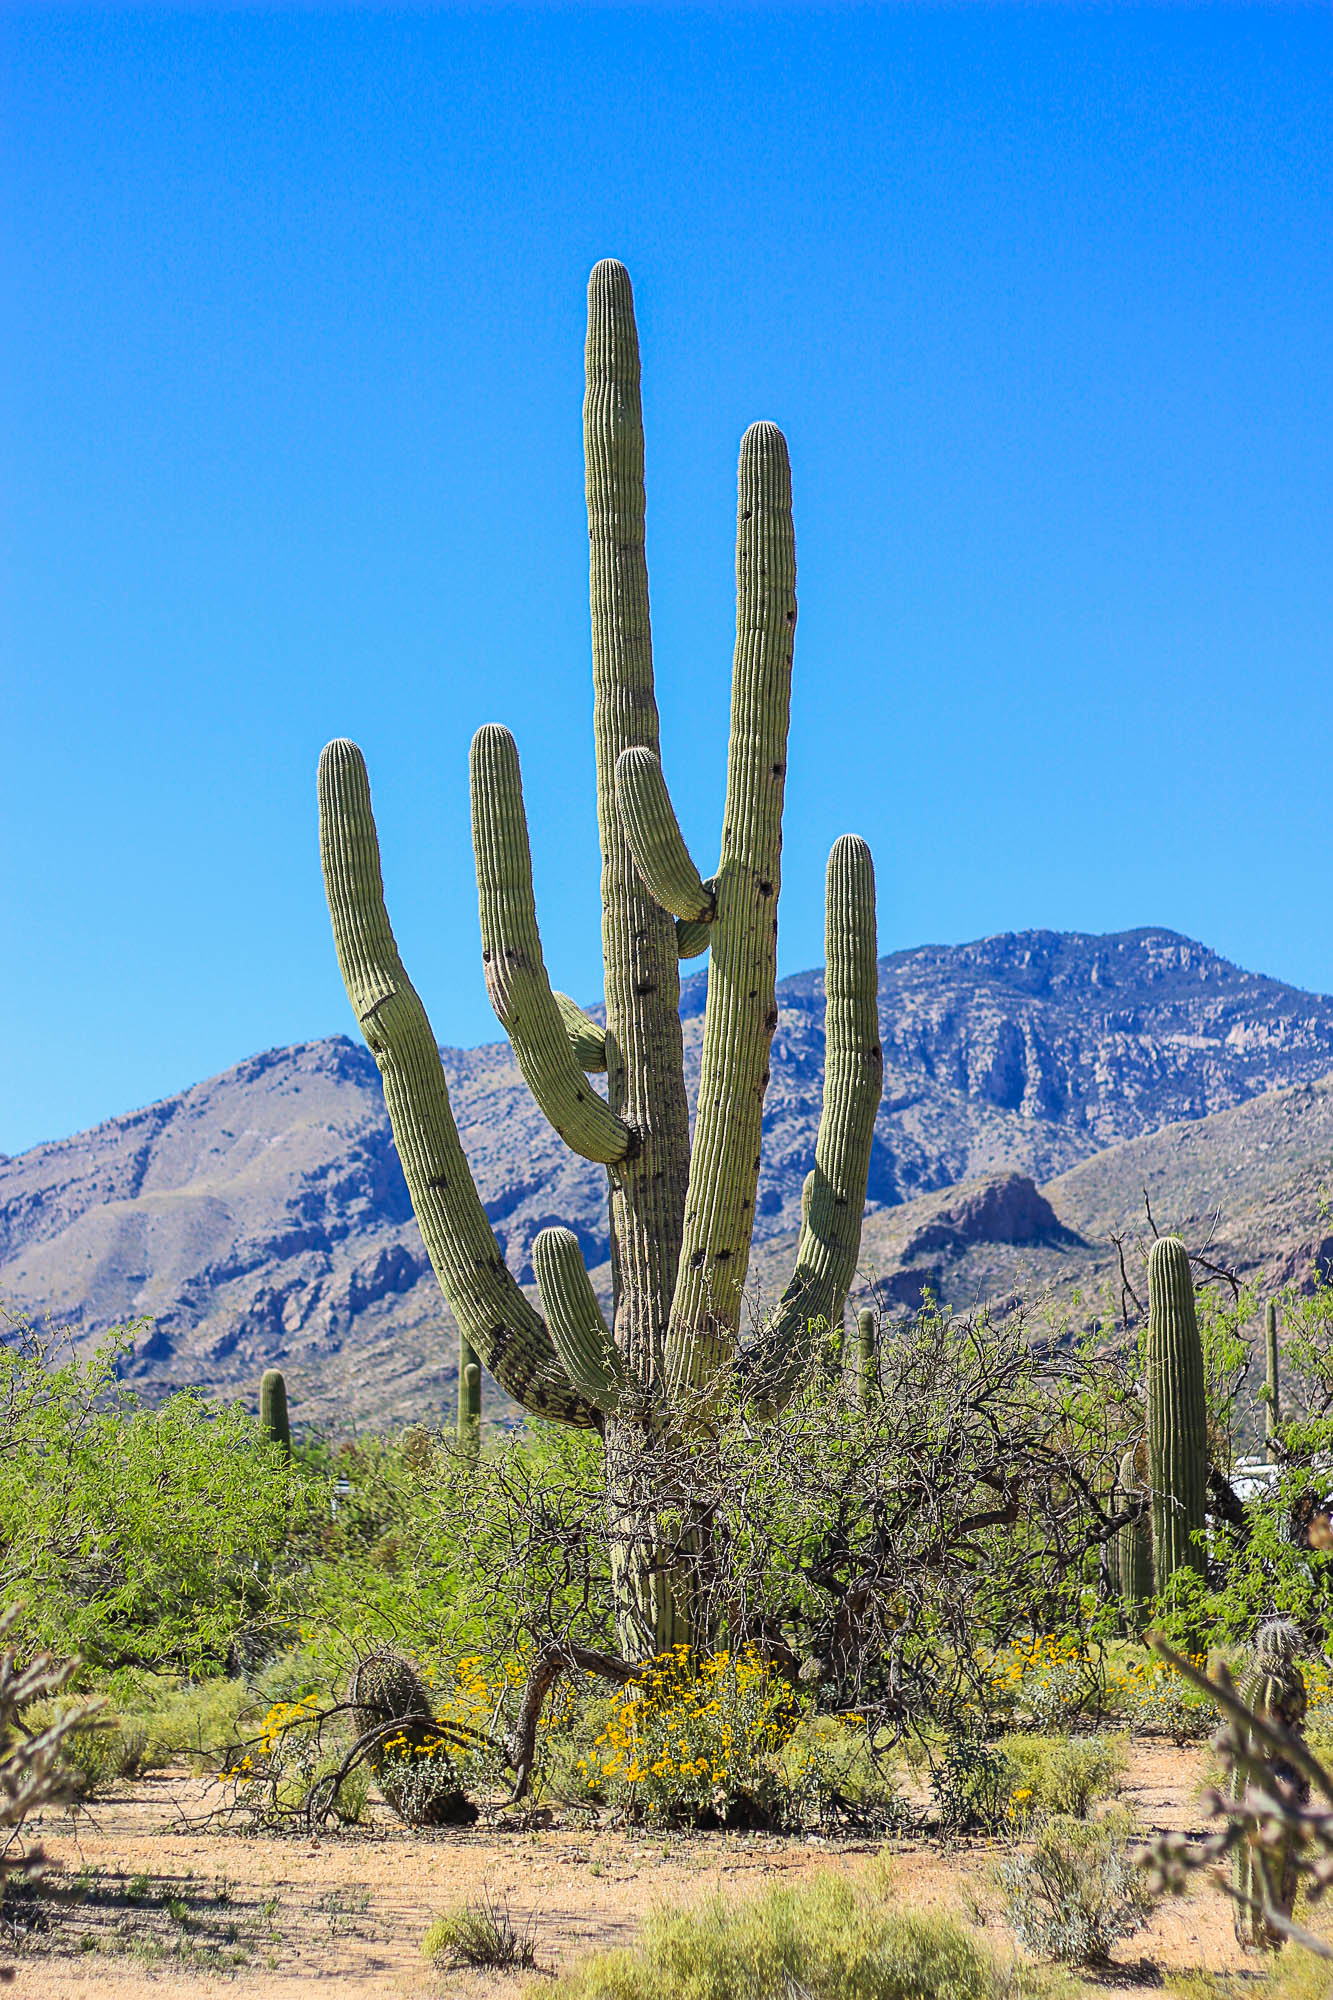 Sabino Canyon National Forest, Tucson Arizona, NuventureTravels.com, Saguaro Cactus, Desert